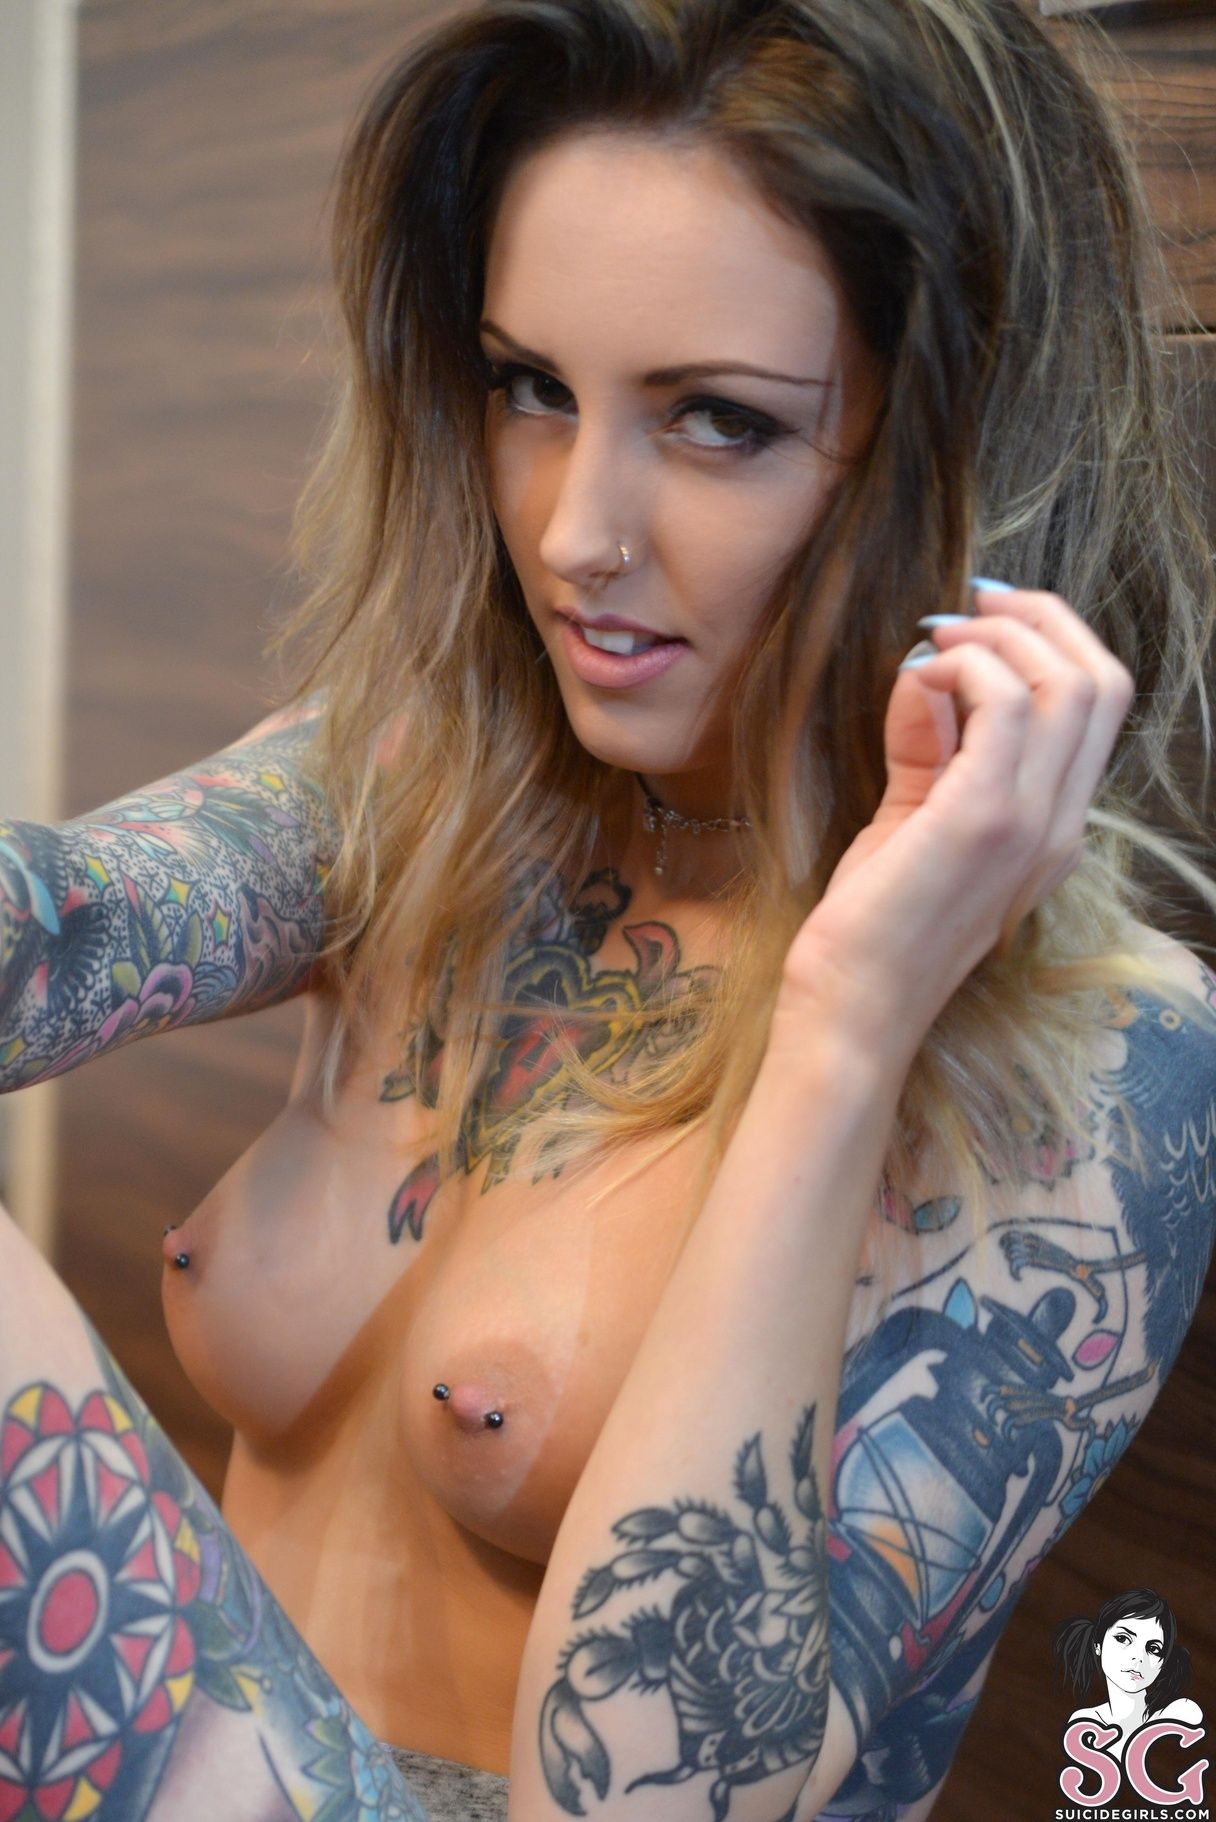 FREE SEX WEB CAM GIRLS - www.bit.ly/1Su5ixk Tattoo Women,